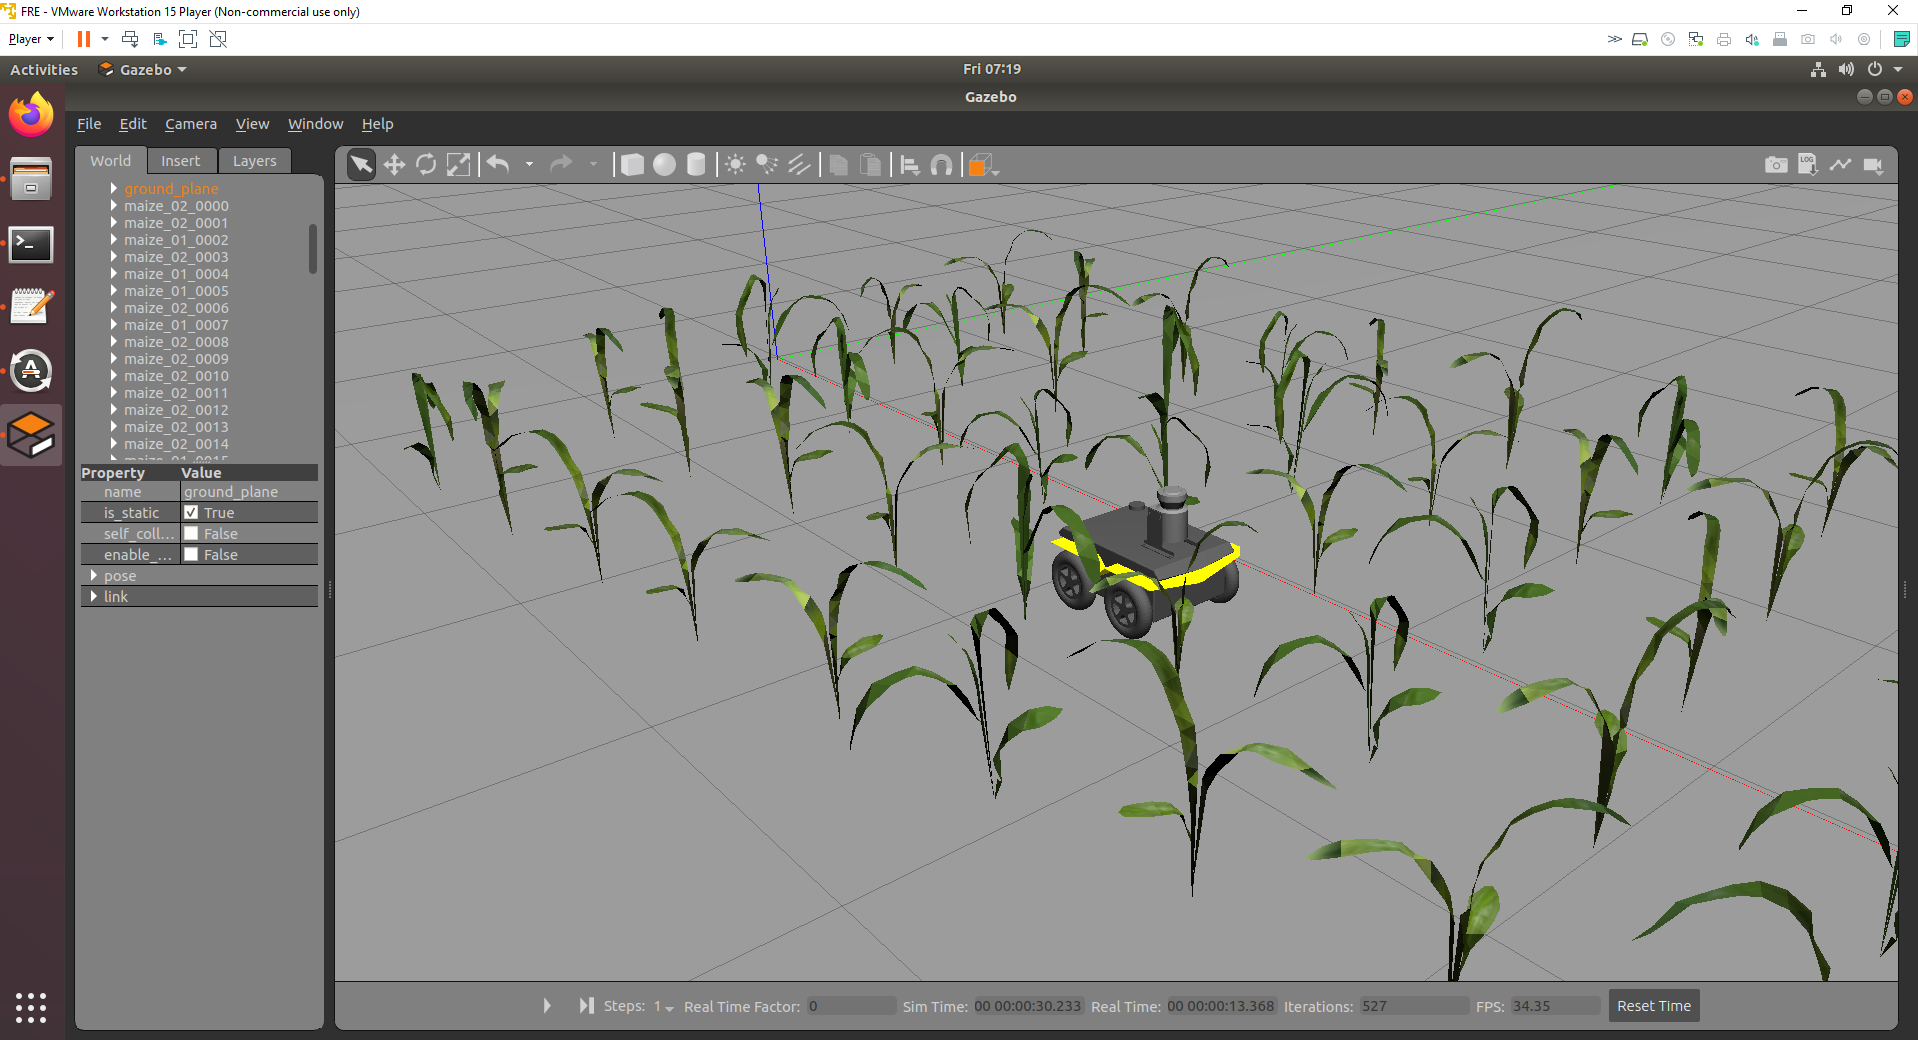 3D meshes of real maize plants.